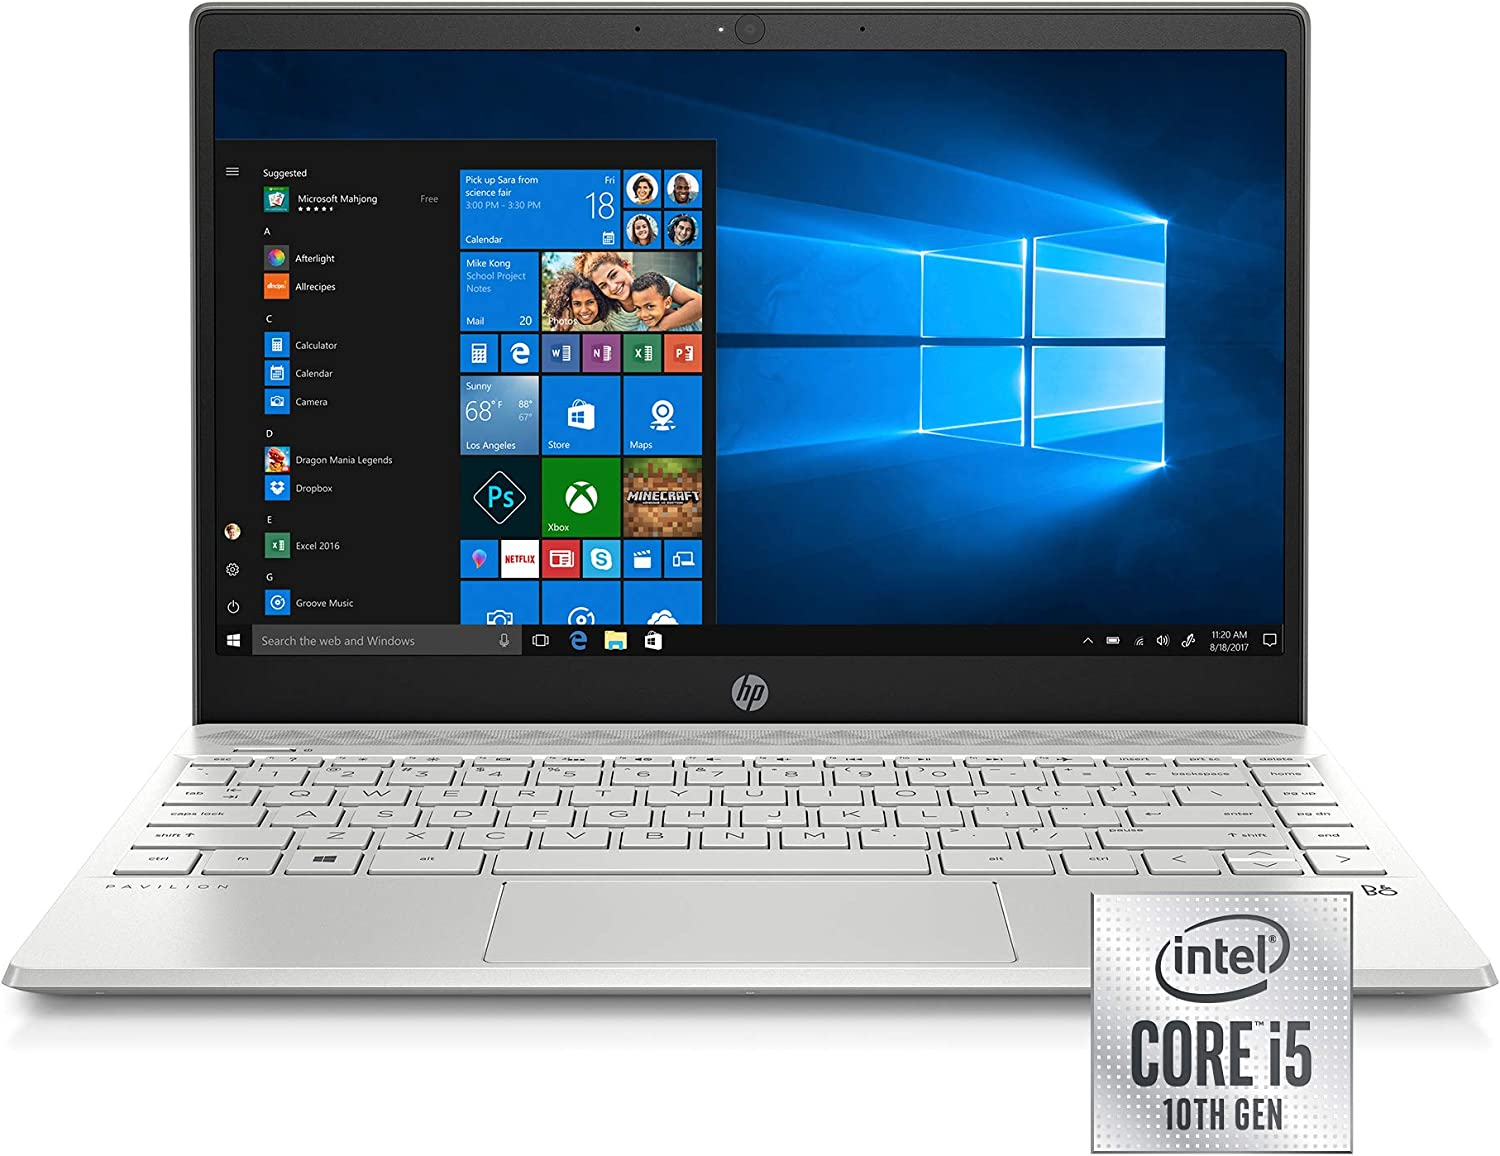 HP Pavilion 13-Inch Laptop, 10th Gen Intel Core i5-1035G1, 8 GB SDRAM Memory, 512 GB Solid-State Drive, Windows 10 Home (13-an1010nr, Mineral Silver)